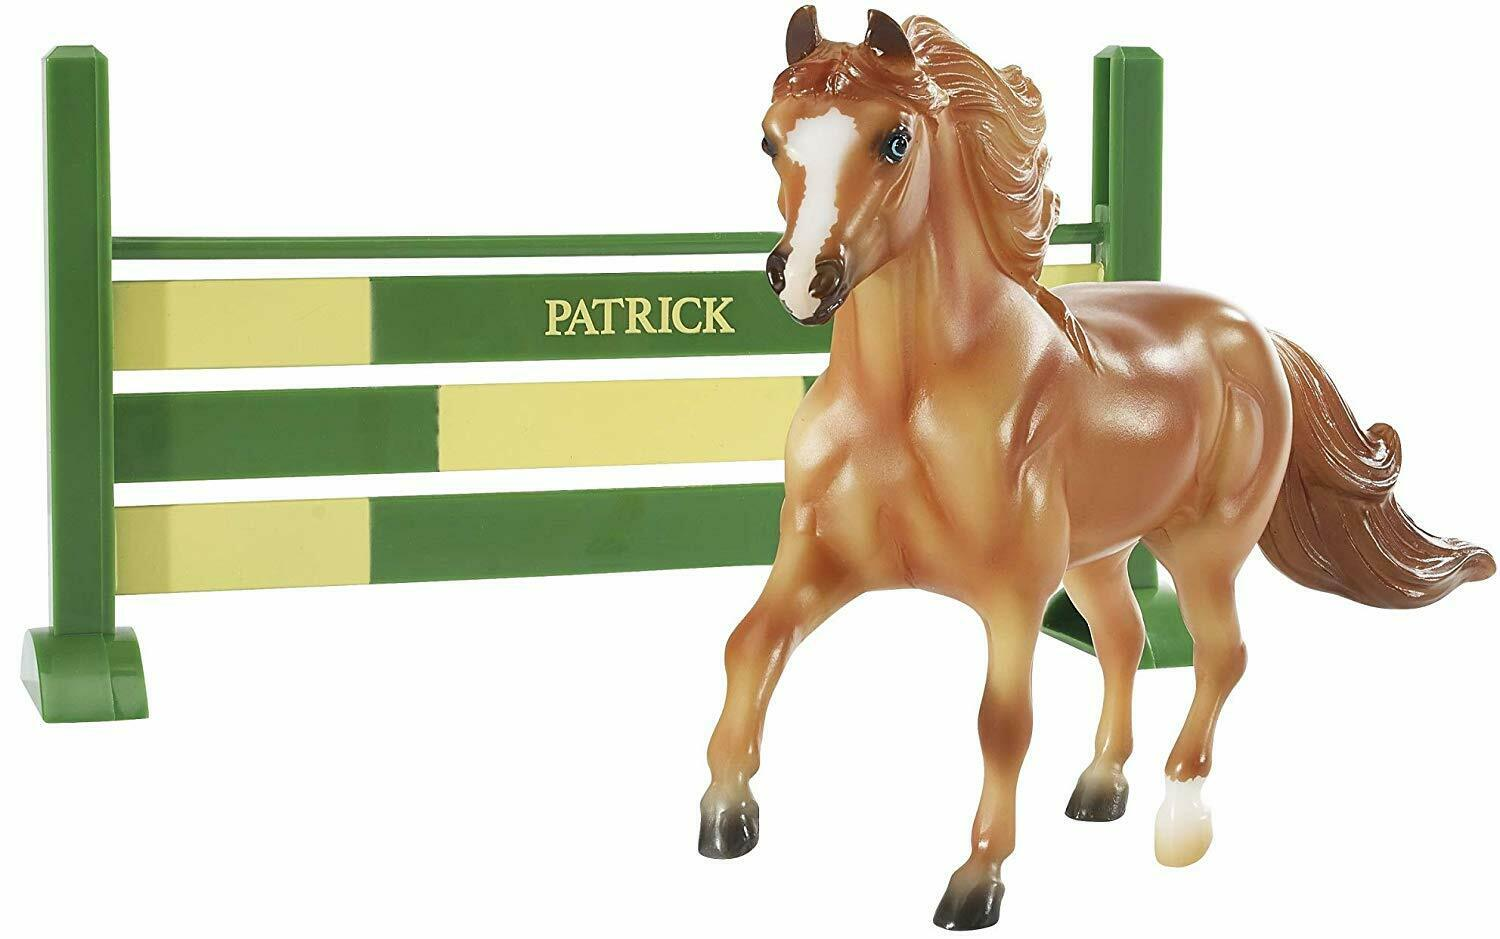 Breyer #1812 GTR Patrick's Vindicator - New Factory Sealed